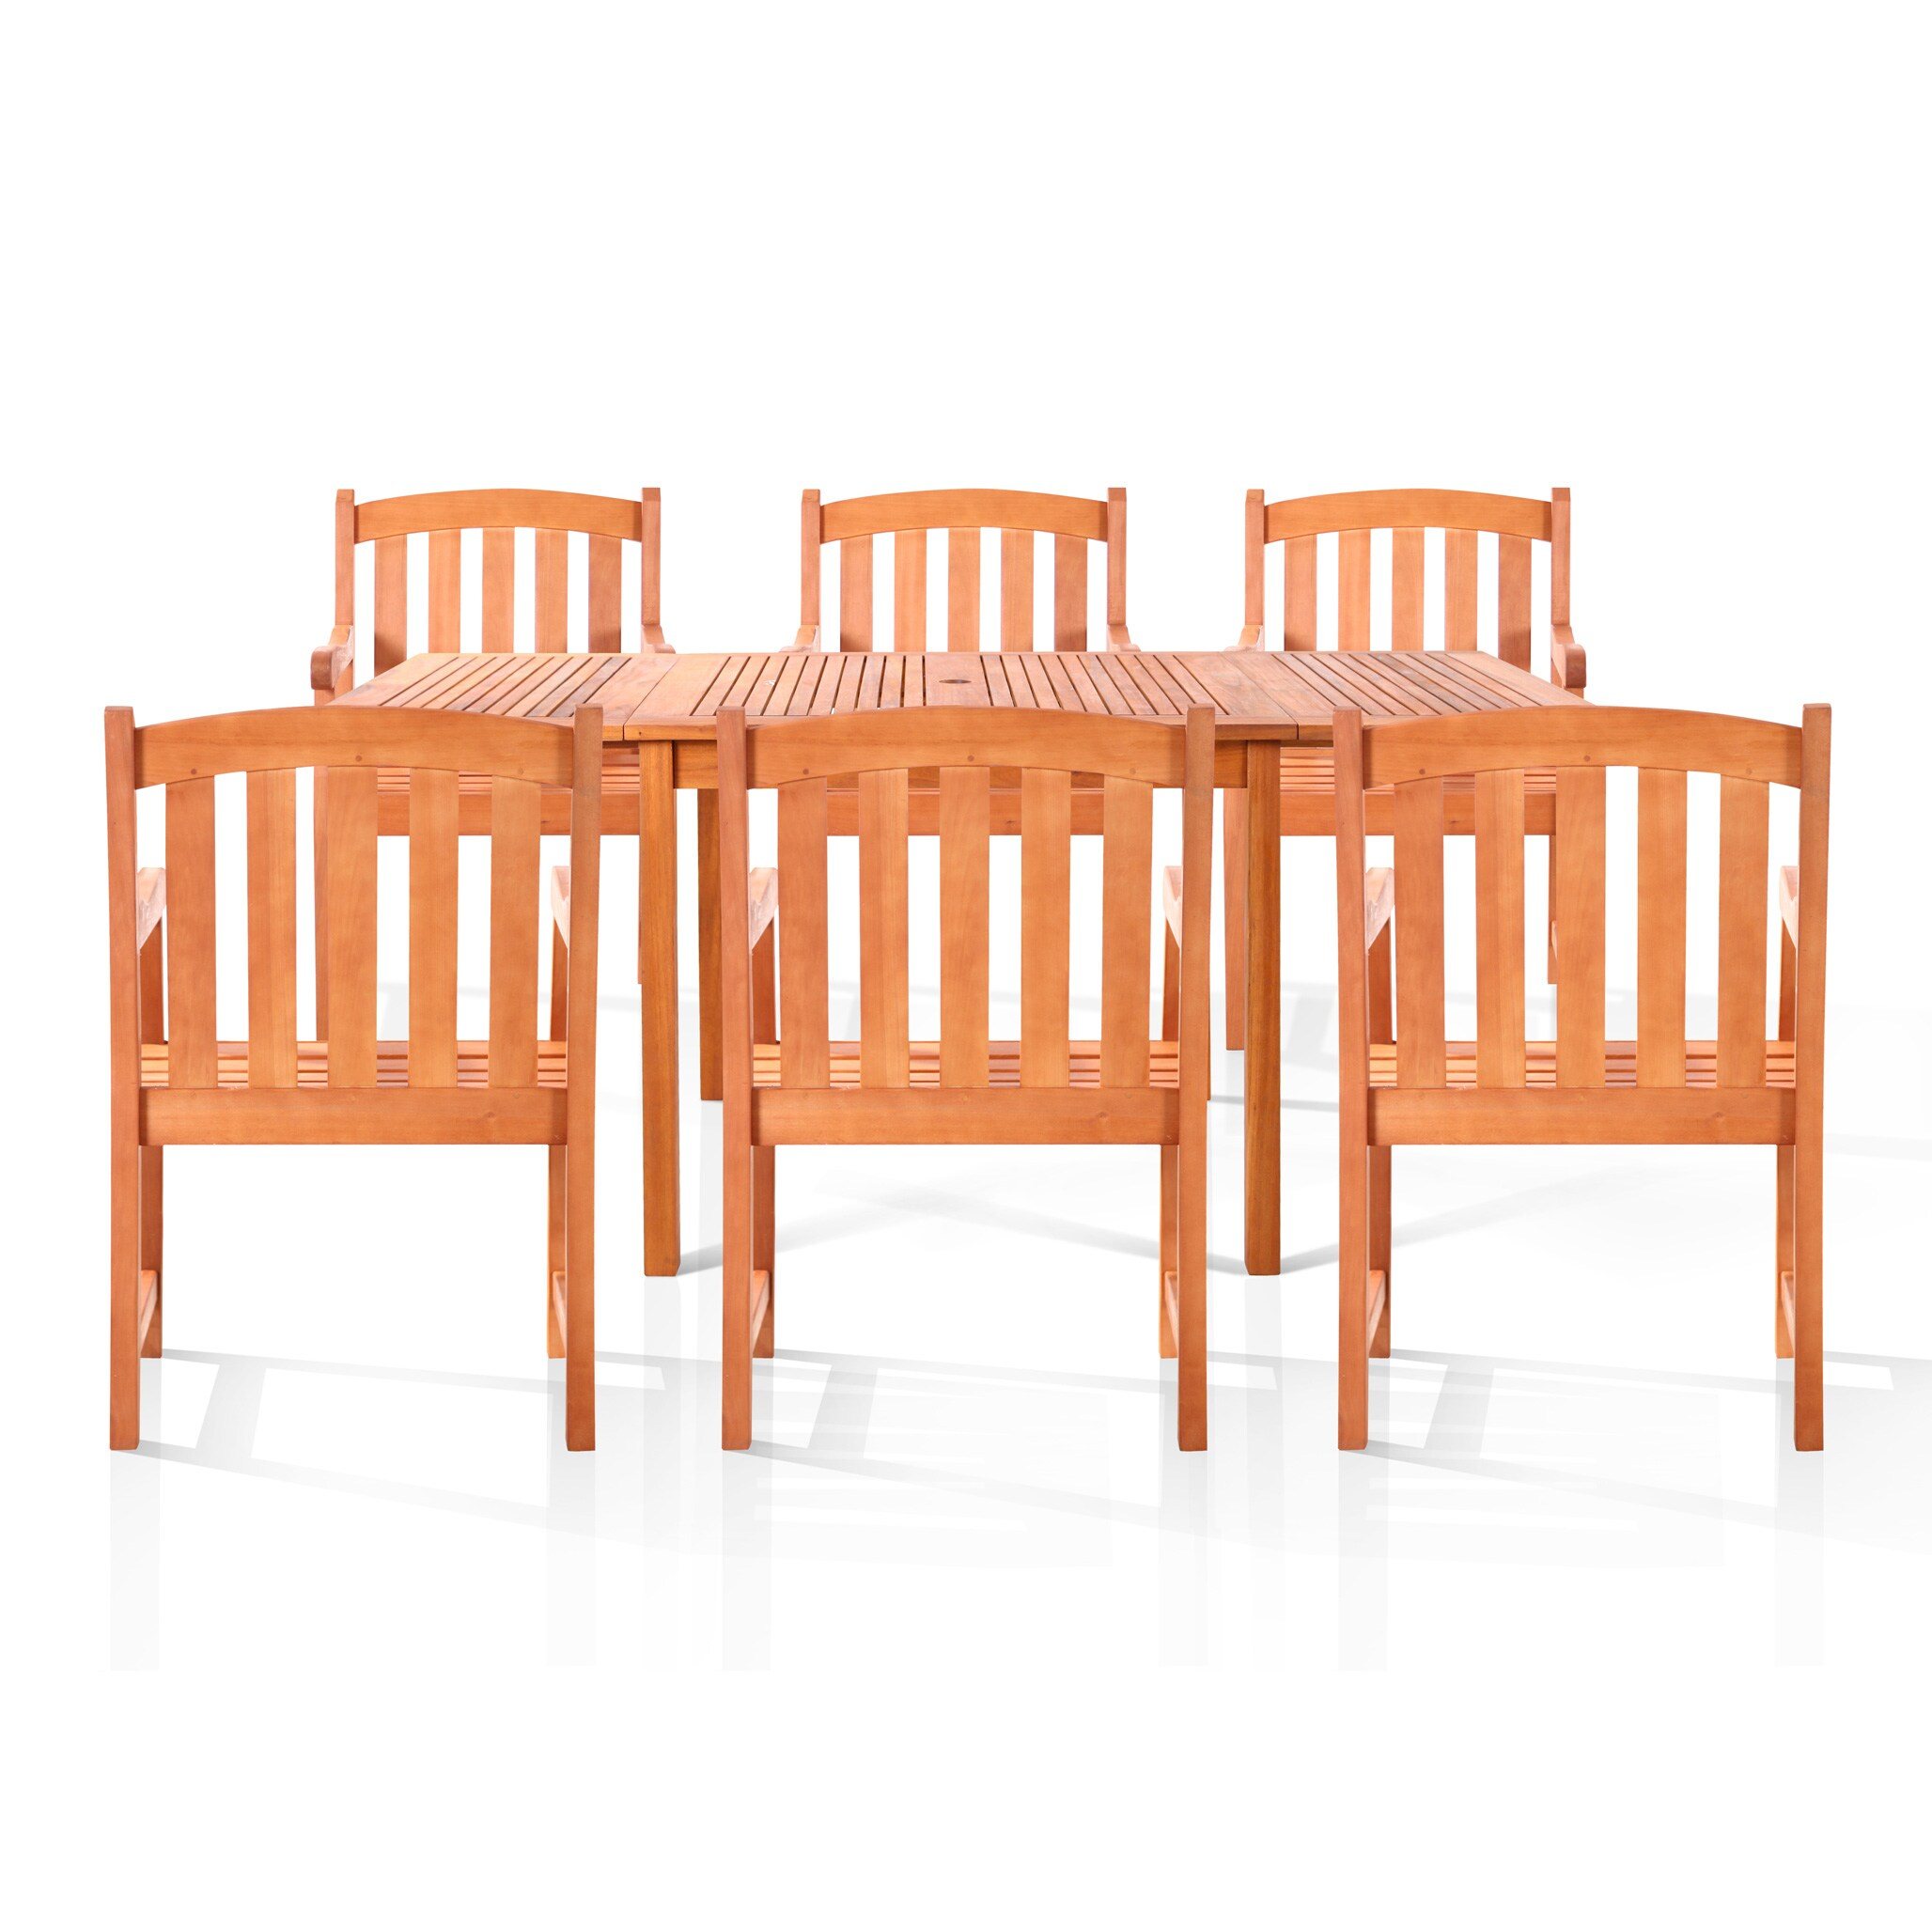 Vifah Sydney 7-piece Oil Rubbed Outdoor Dining Set at Sears.com